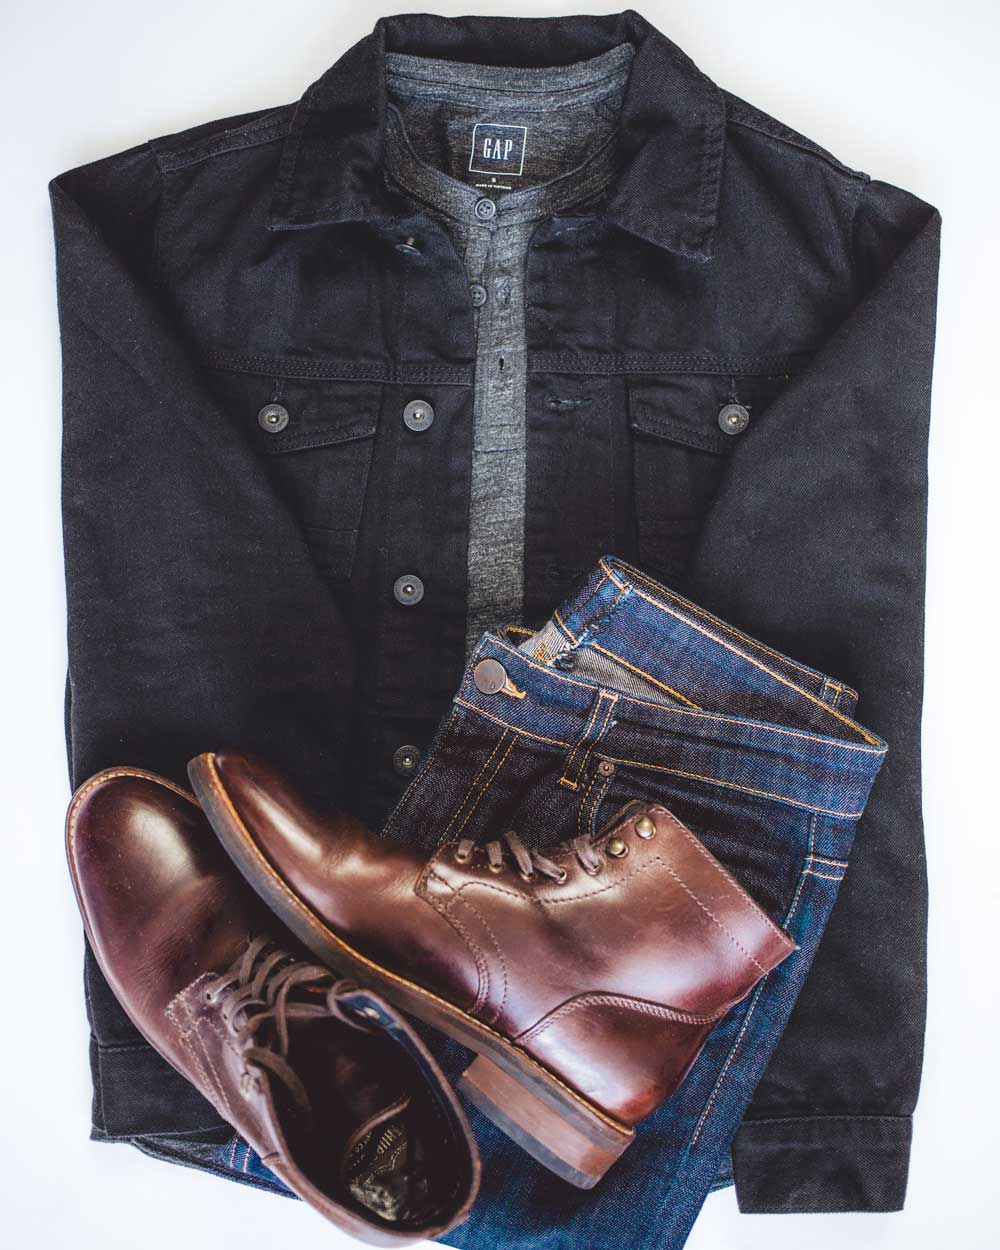 Thursday Boots Captain black denim jacket gray henley DSTLD jeans